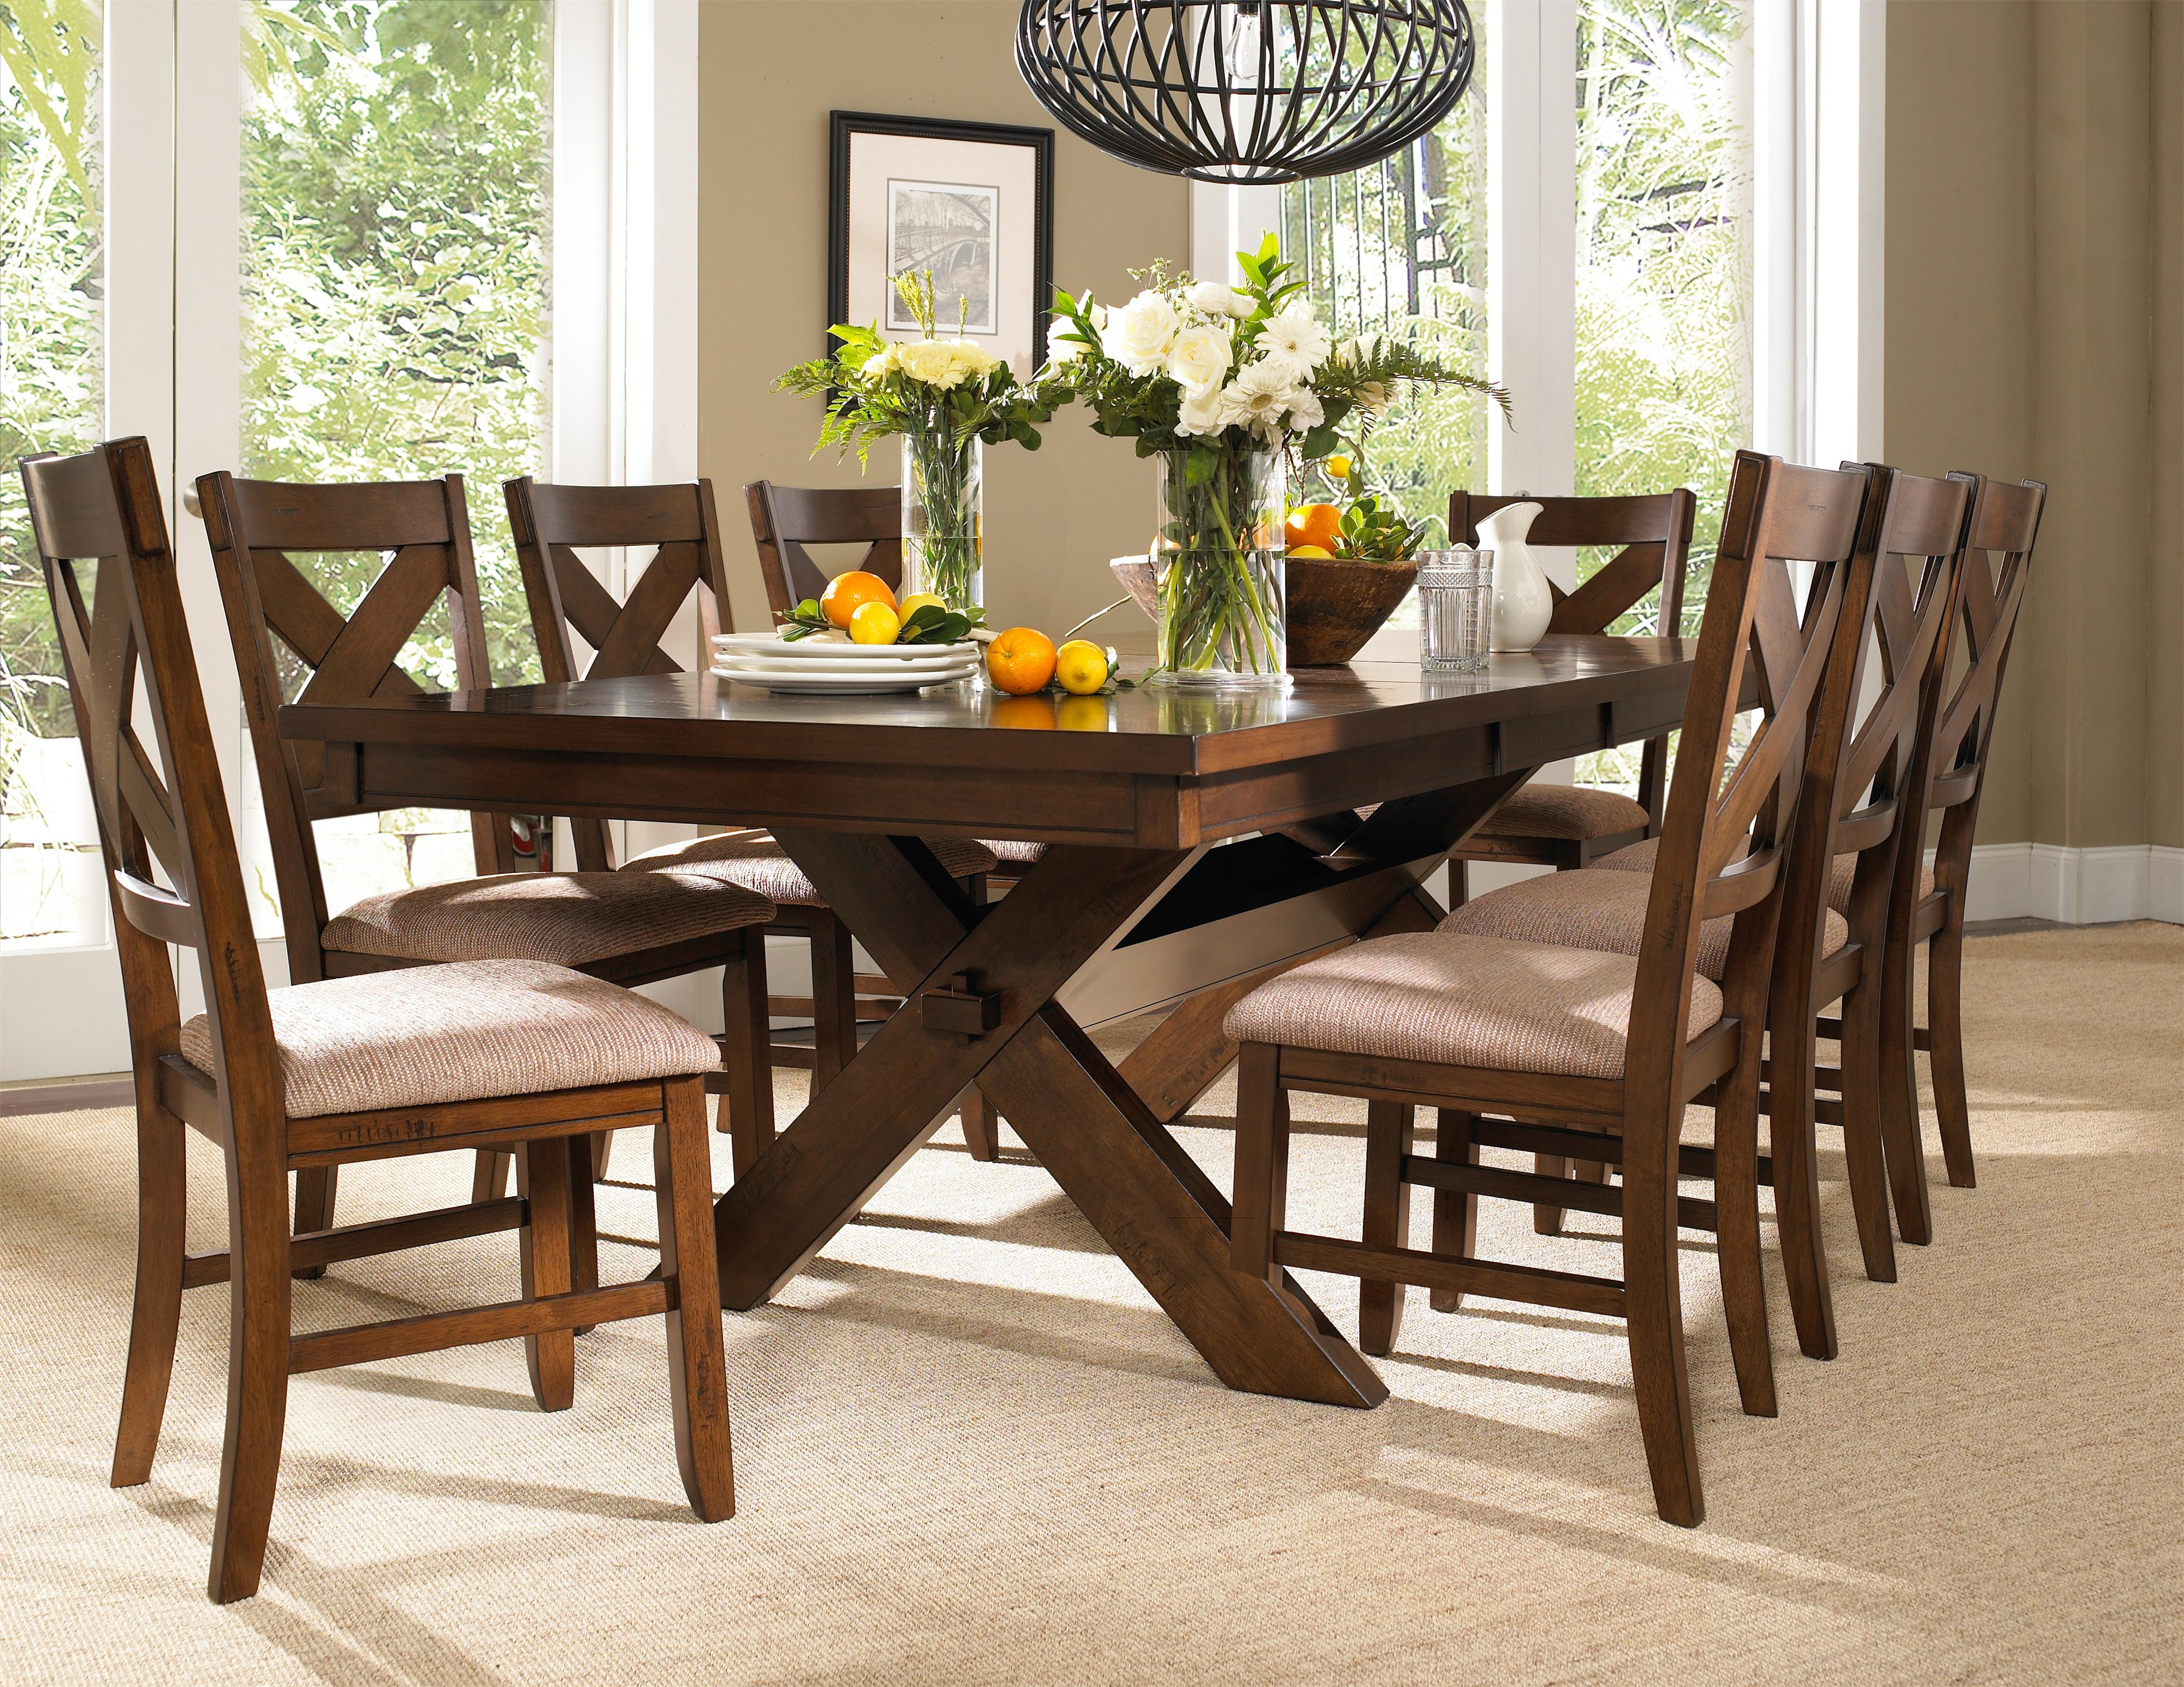 Powell Kraven 9 Piece Dining Set - Item Number: 713-417M3